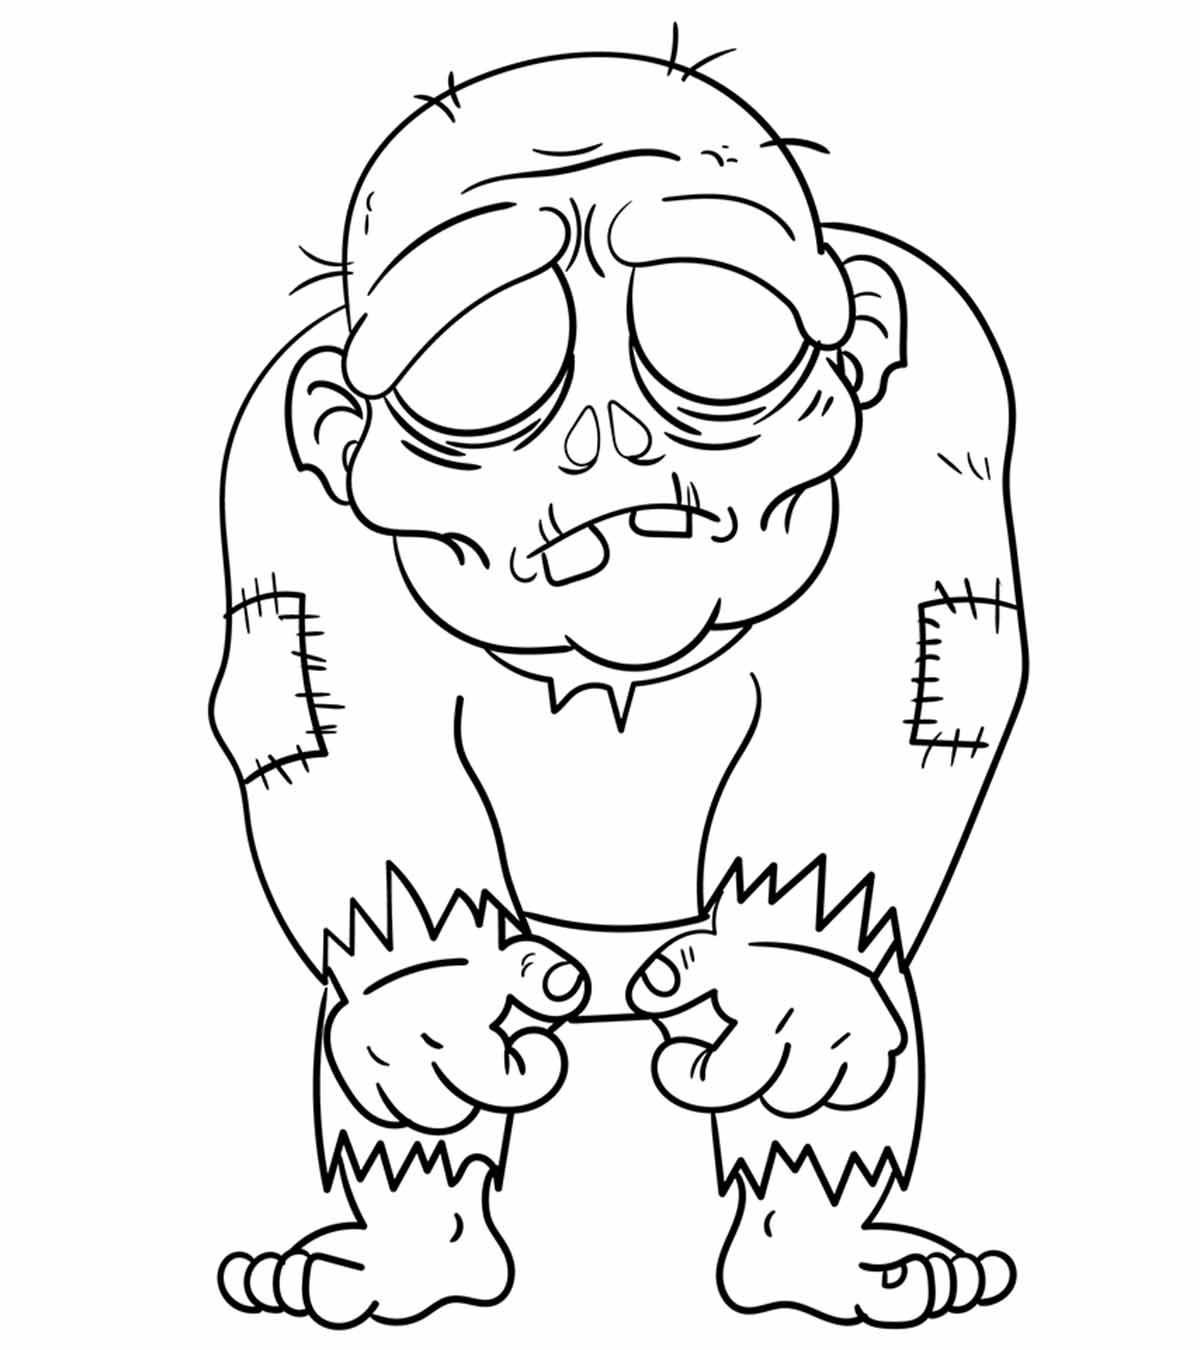 pictures of zombies to color scary zombie coloring pages coloring home of to zombies pictures color